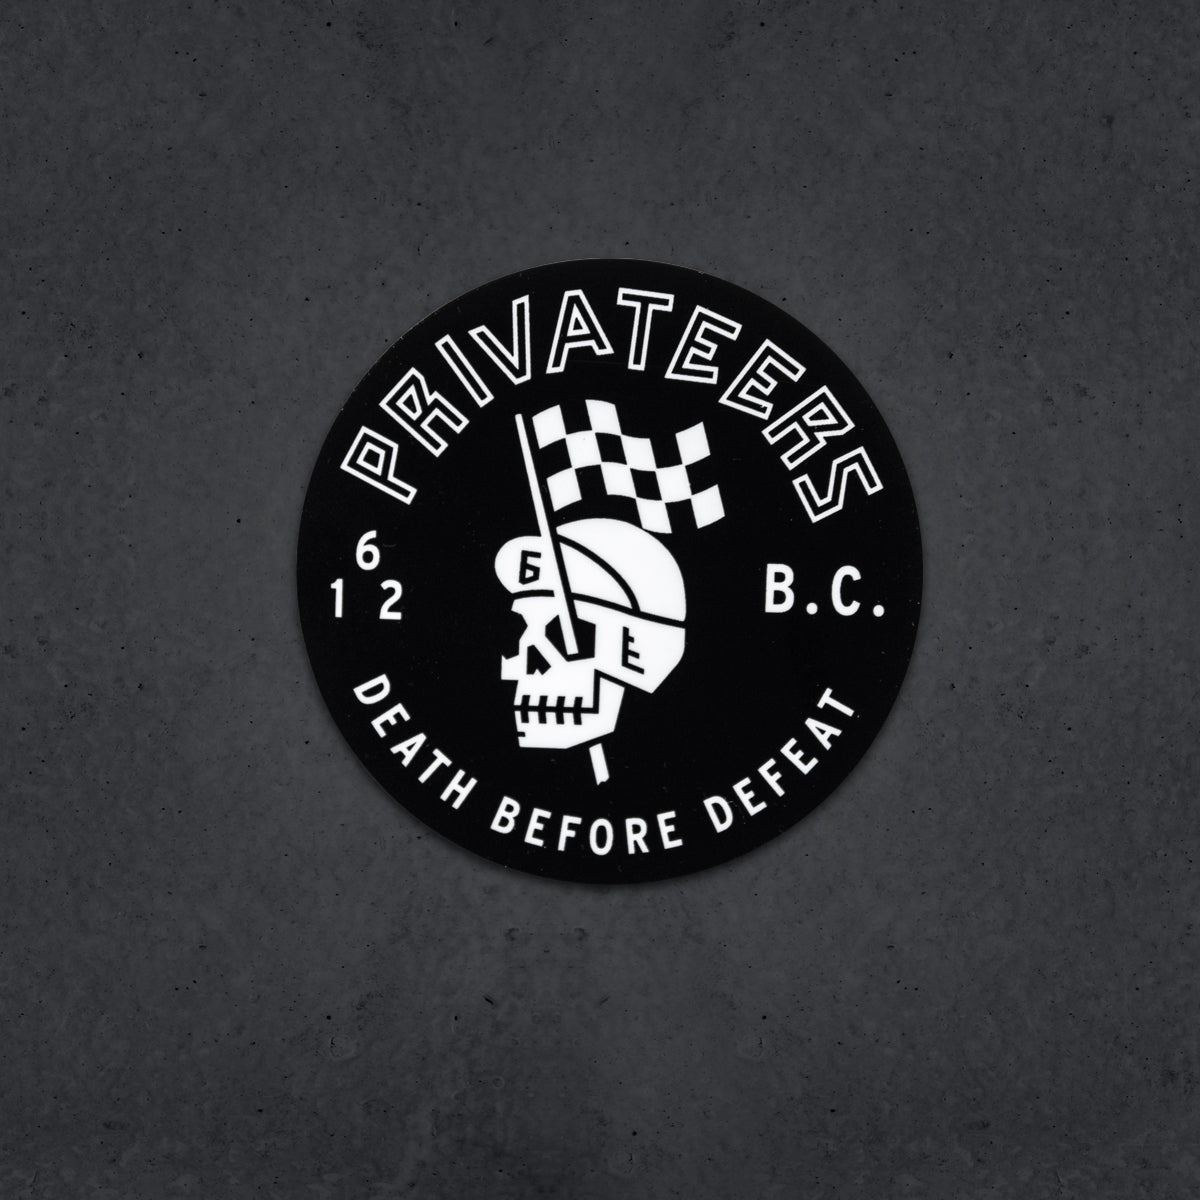 Privateers Sticker